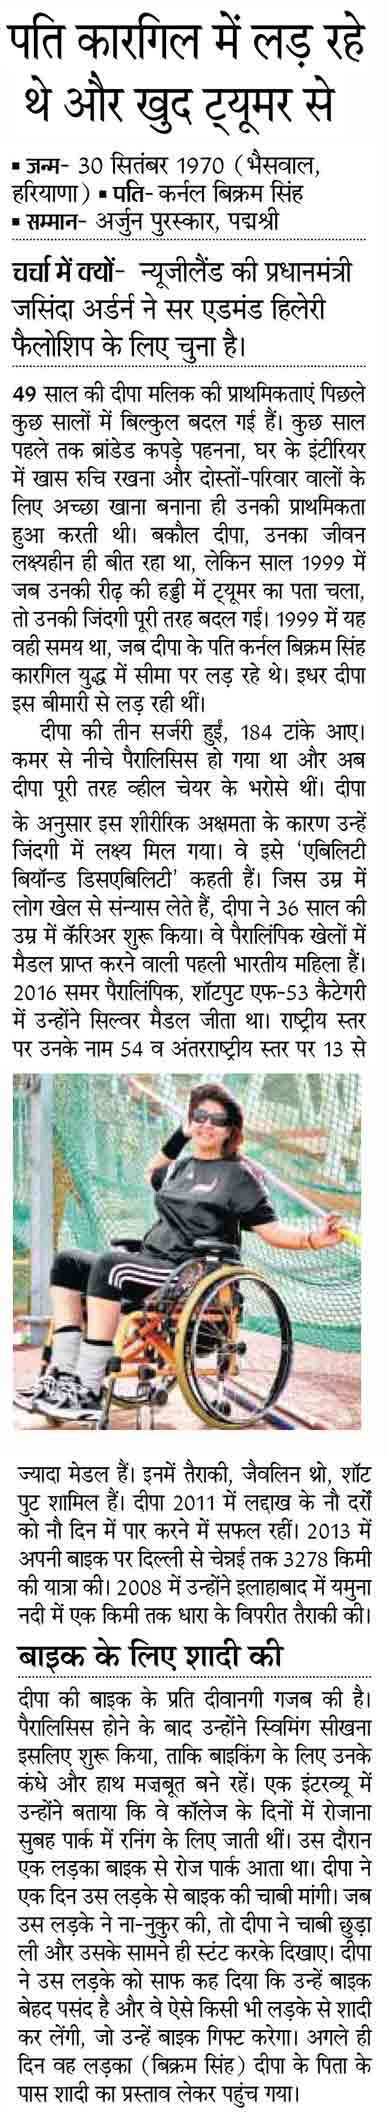 Deepa Malik:India's First Female Medalist in Paralympic Games